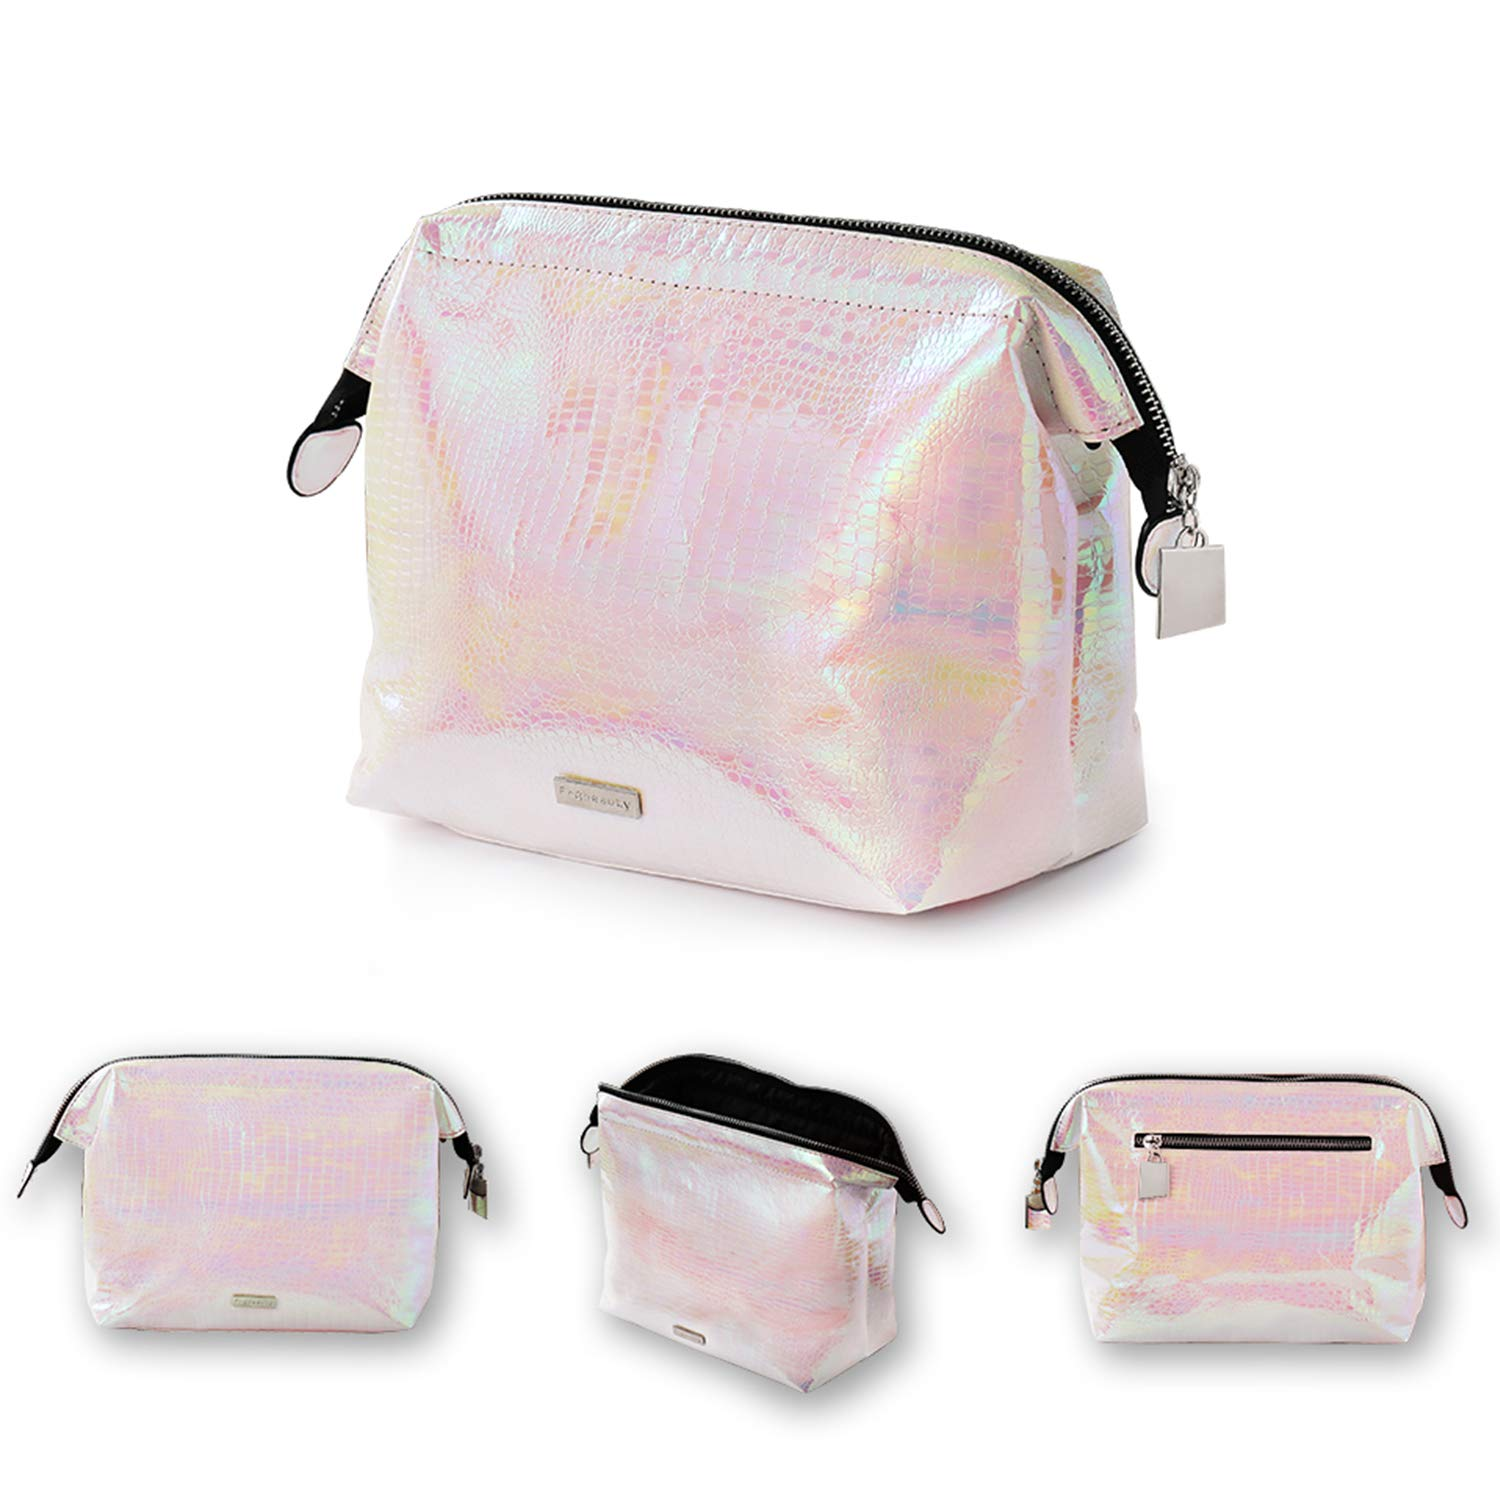 4a8c013a64 Amazon.com  Holographic makeup bag Cosmetic Shiny Rainbow pouch Portable  Handle bag Colorful Laser Iridescent pouch Waterproof Cosmetic large Makeup  Case ...